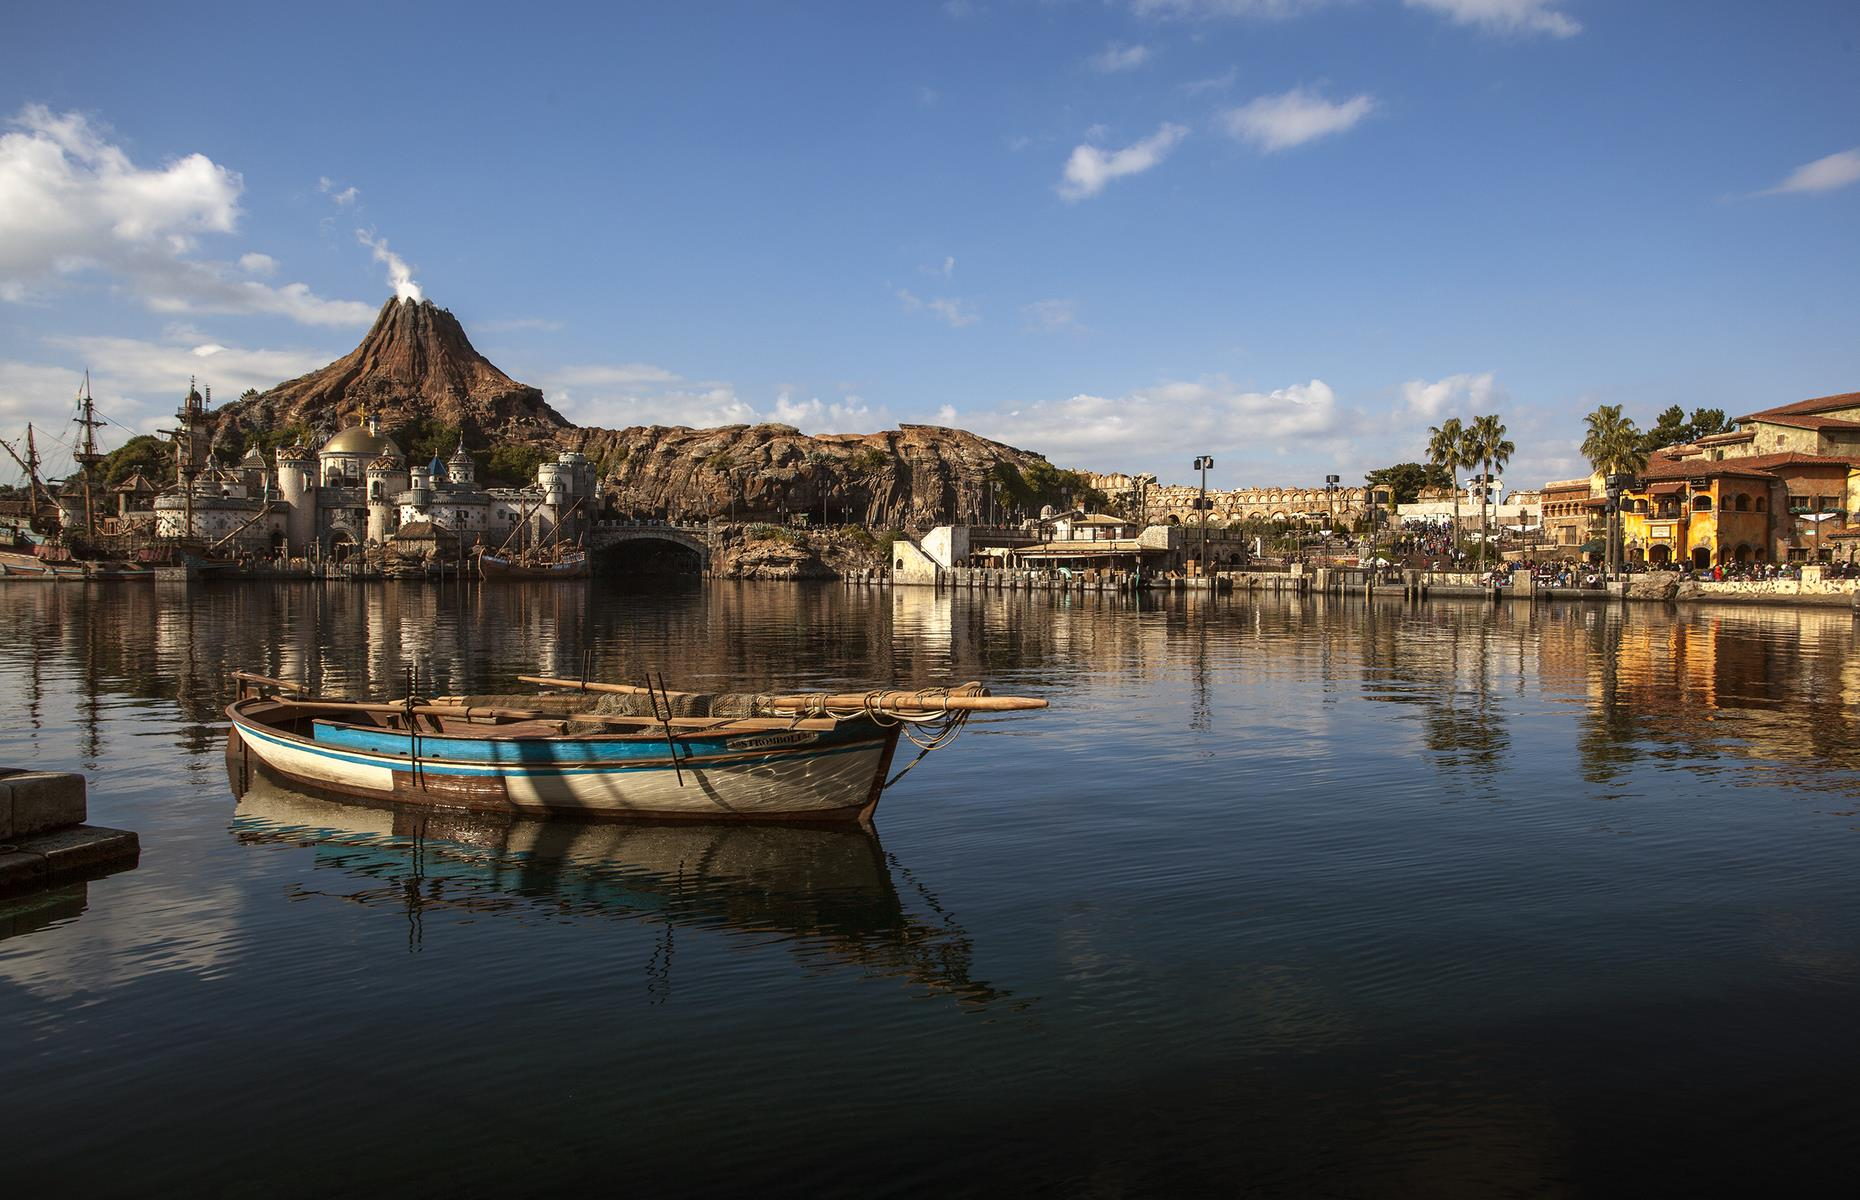 Slide 11 of 28: The project was soon forgotten in favor of WestCOT, Anaheim's answer to Florida's Epcot. However, this venture was also canceled due to financial limitations. Some elements of the fated Port Disney live on in Tokyo's DisneySea theme park (pictured), including the site's Mysterious Island with its imposing volcano as a backdrop.